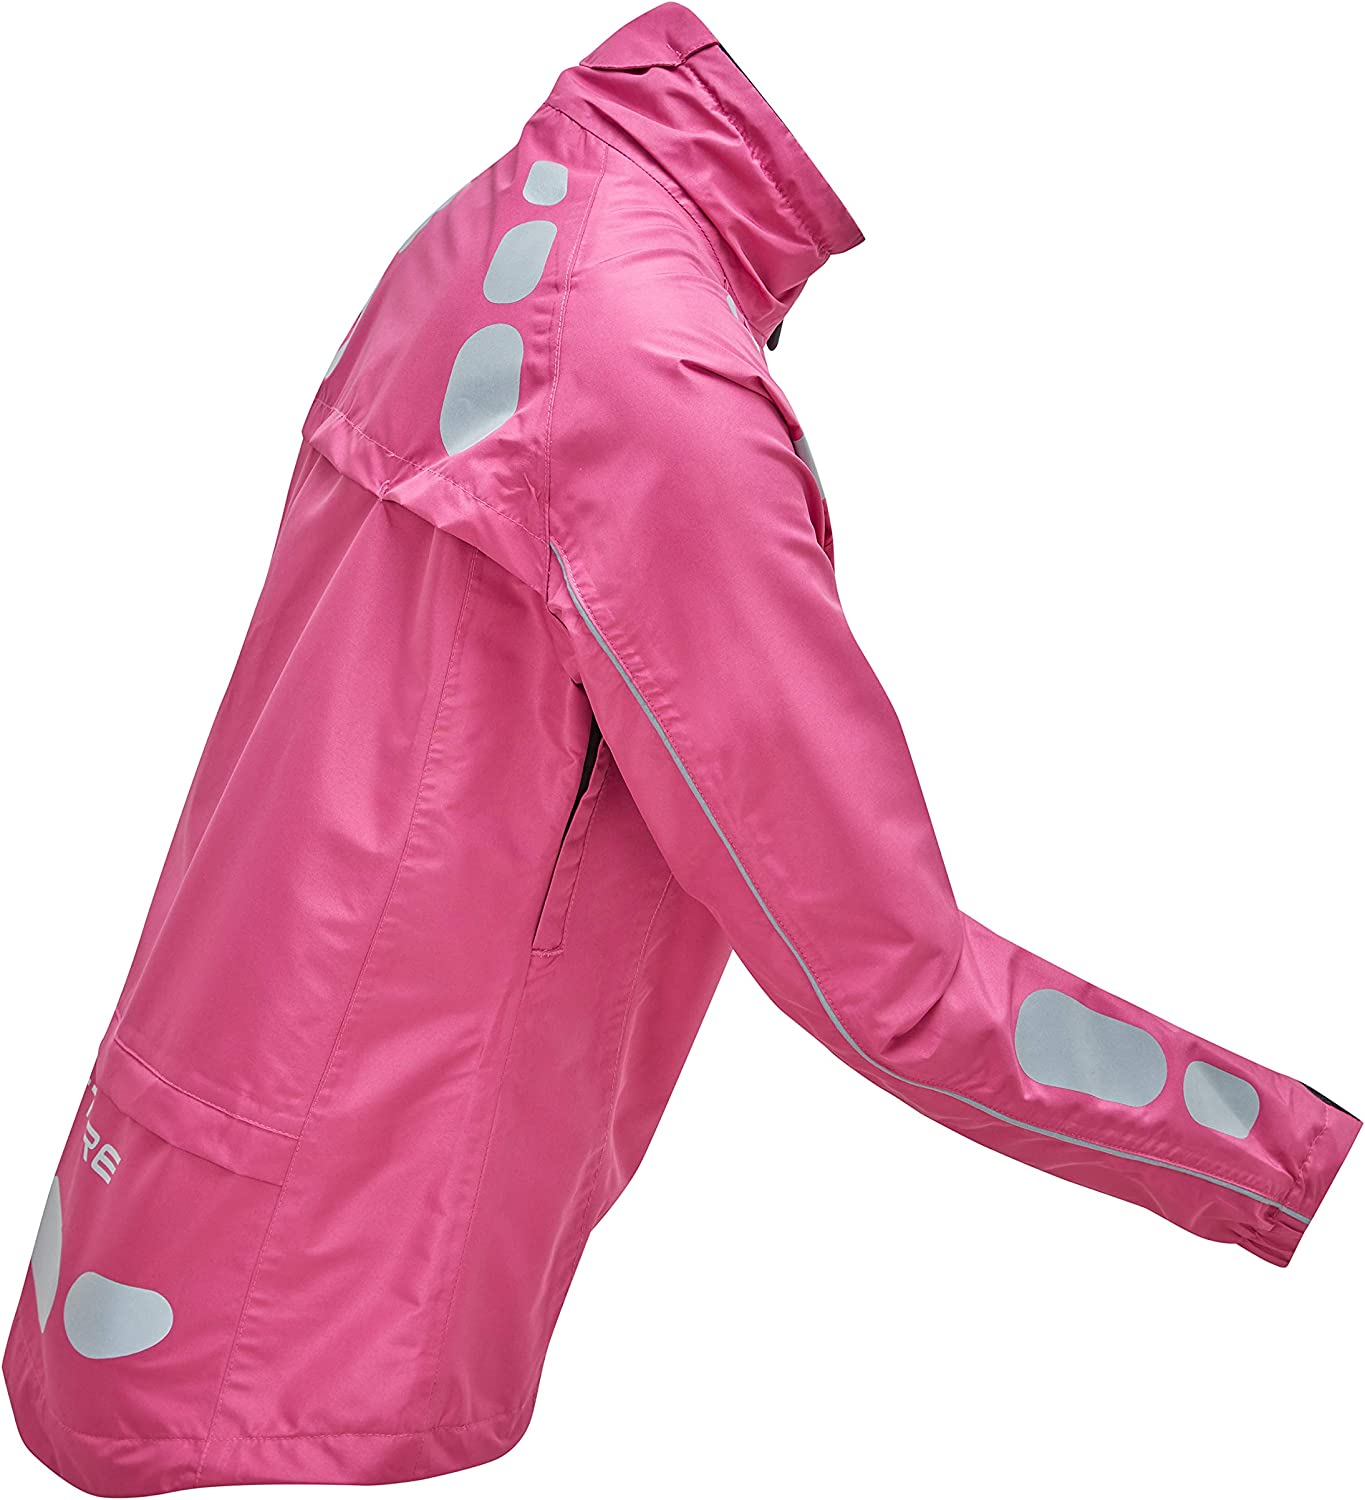 Ettore Ladies Cycling Jacket Waterproof Breathable High Visibility Pink 16 Night Eagle